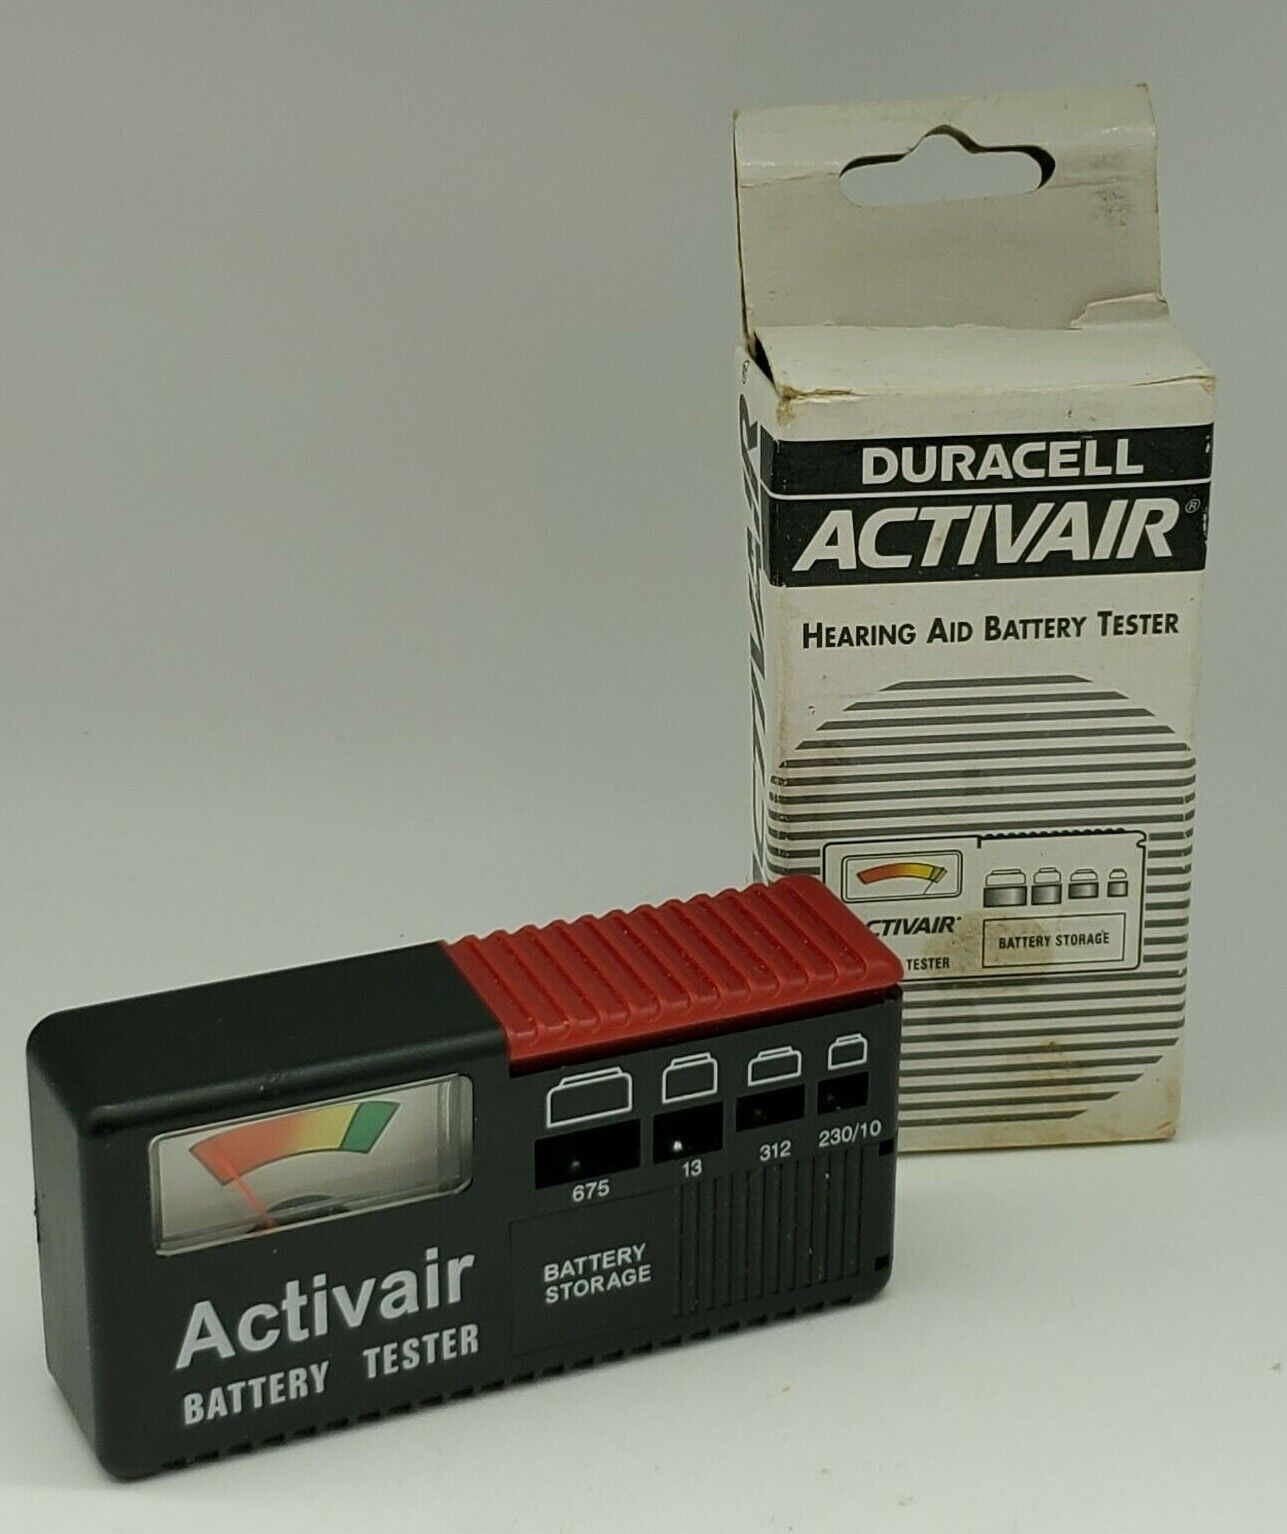 Activair Hearing Aid Battery Tester & Storage Duracell Inc.